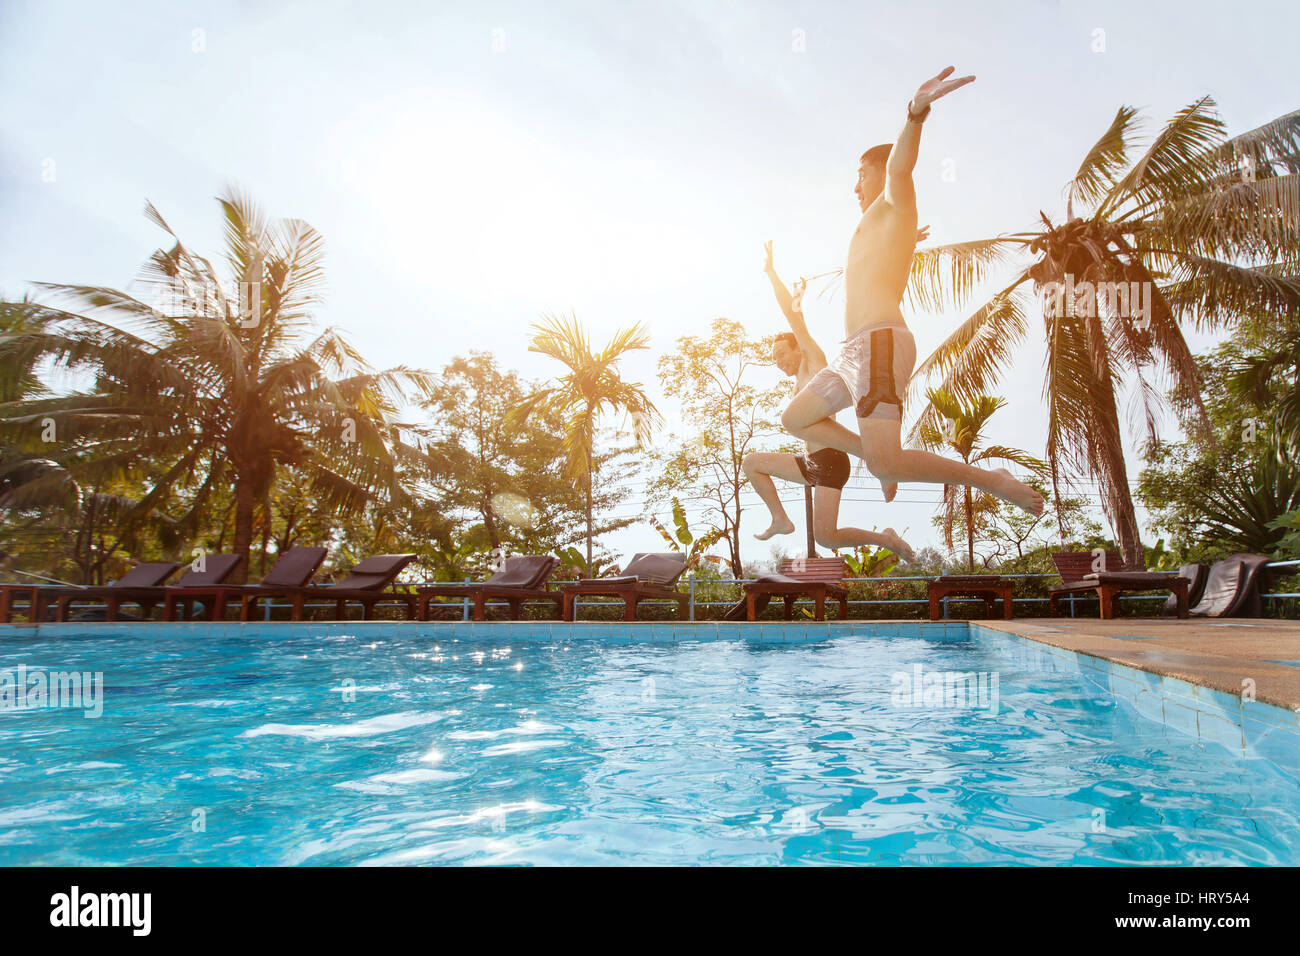 people jumping to the swimming pool, beach holidays, friends having fun together - Stock Image